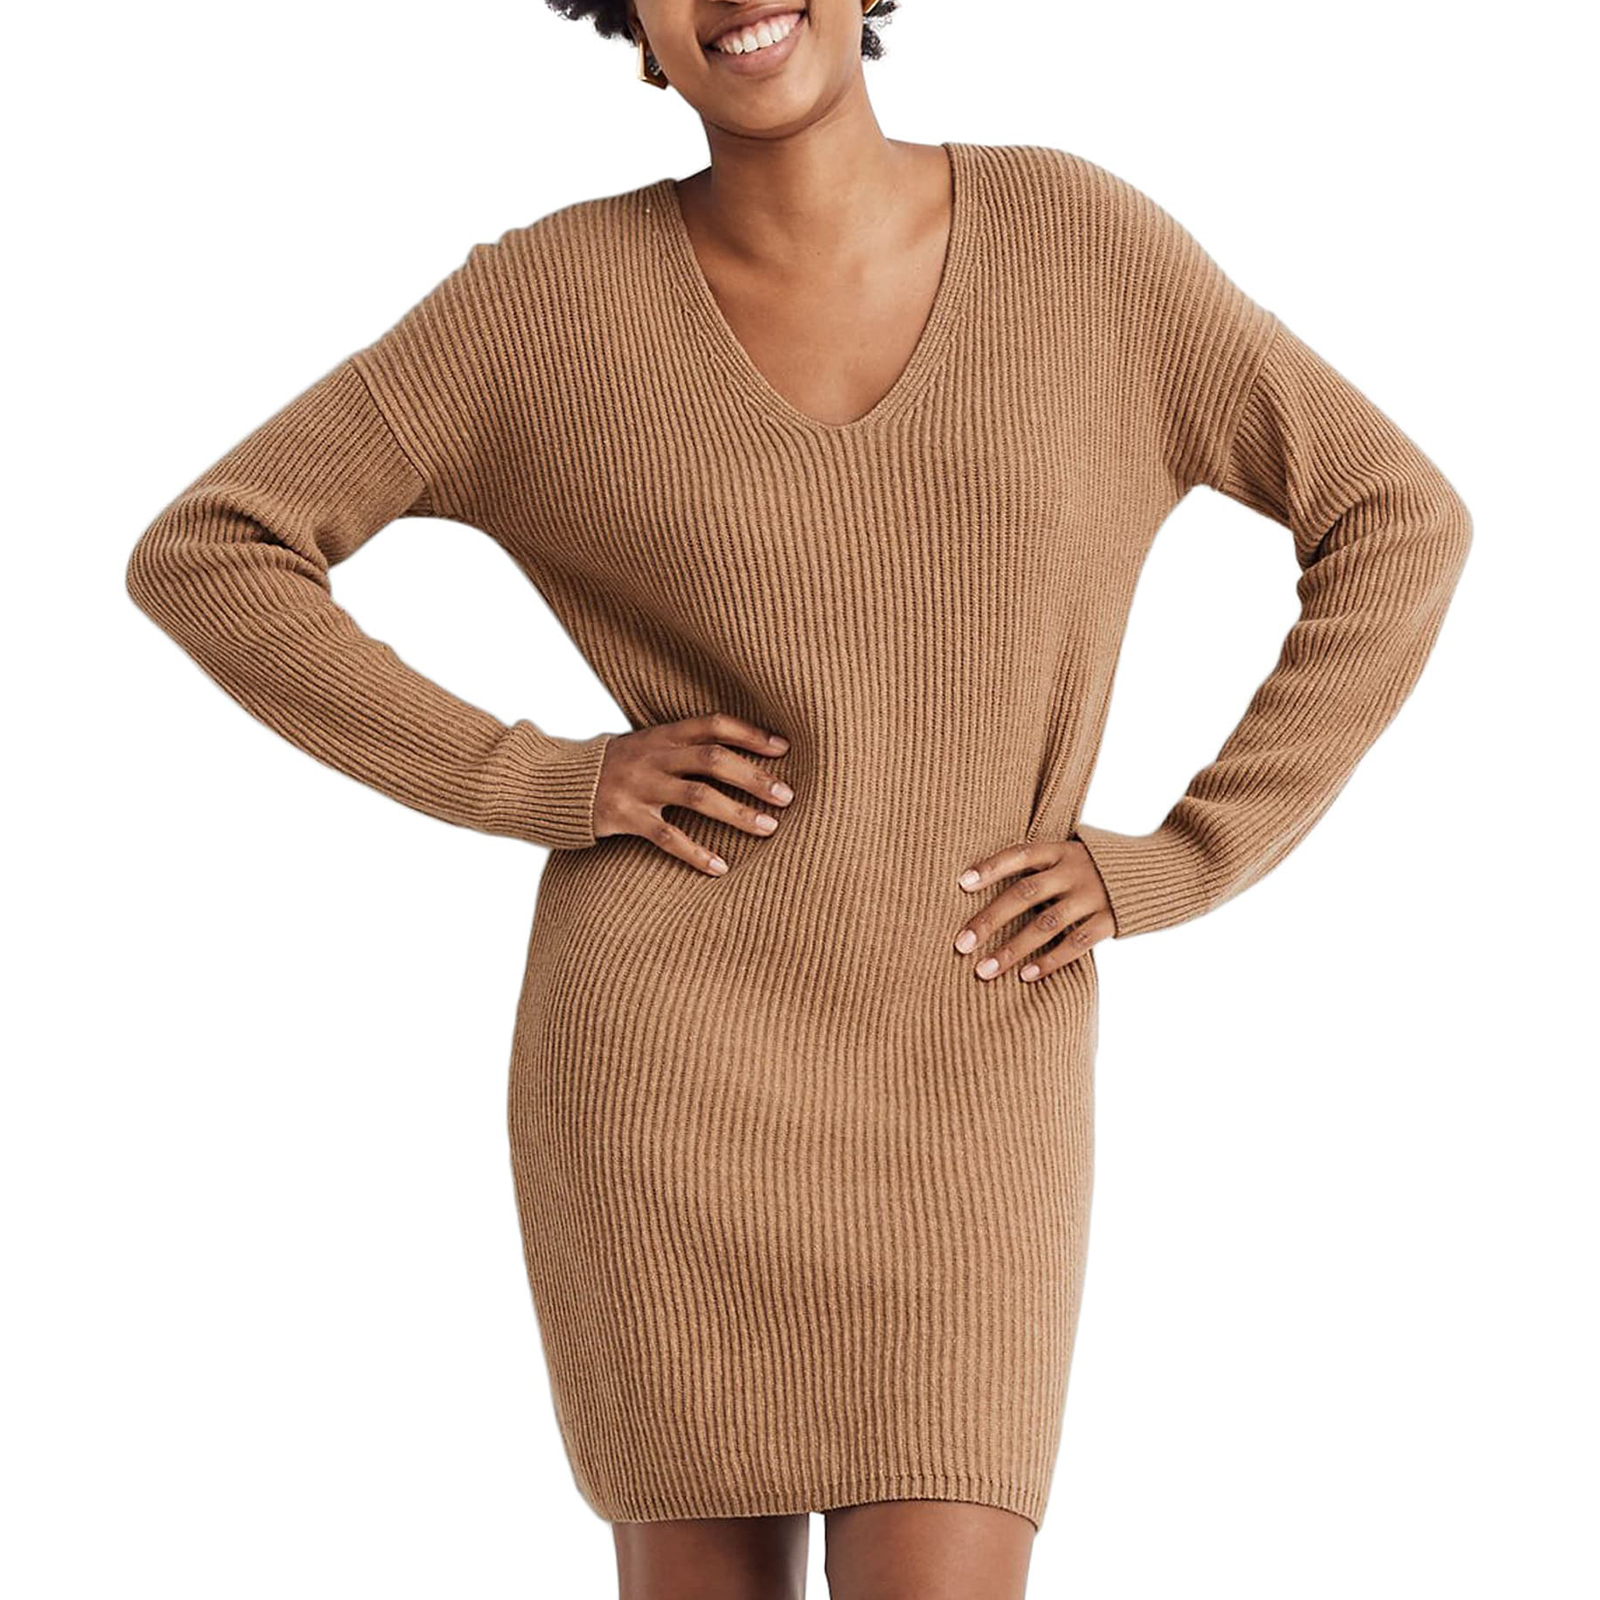 Warm Clothes for Women: Madewell Relaxed Long Sleeve Sweater Dress